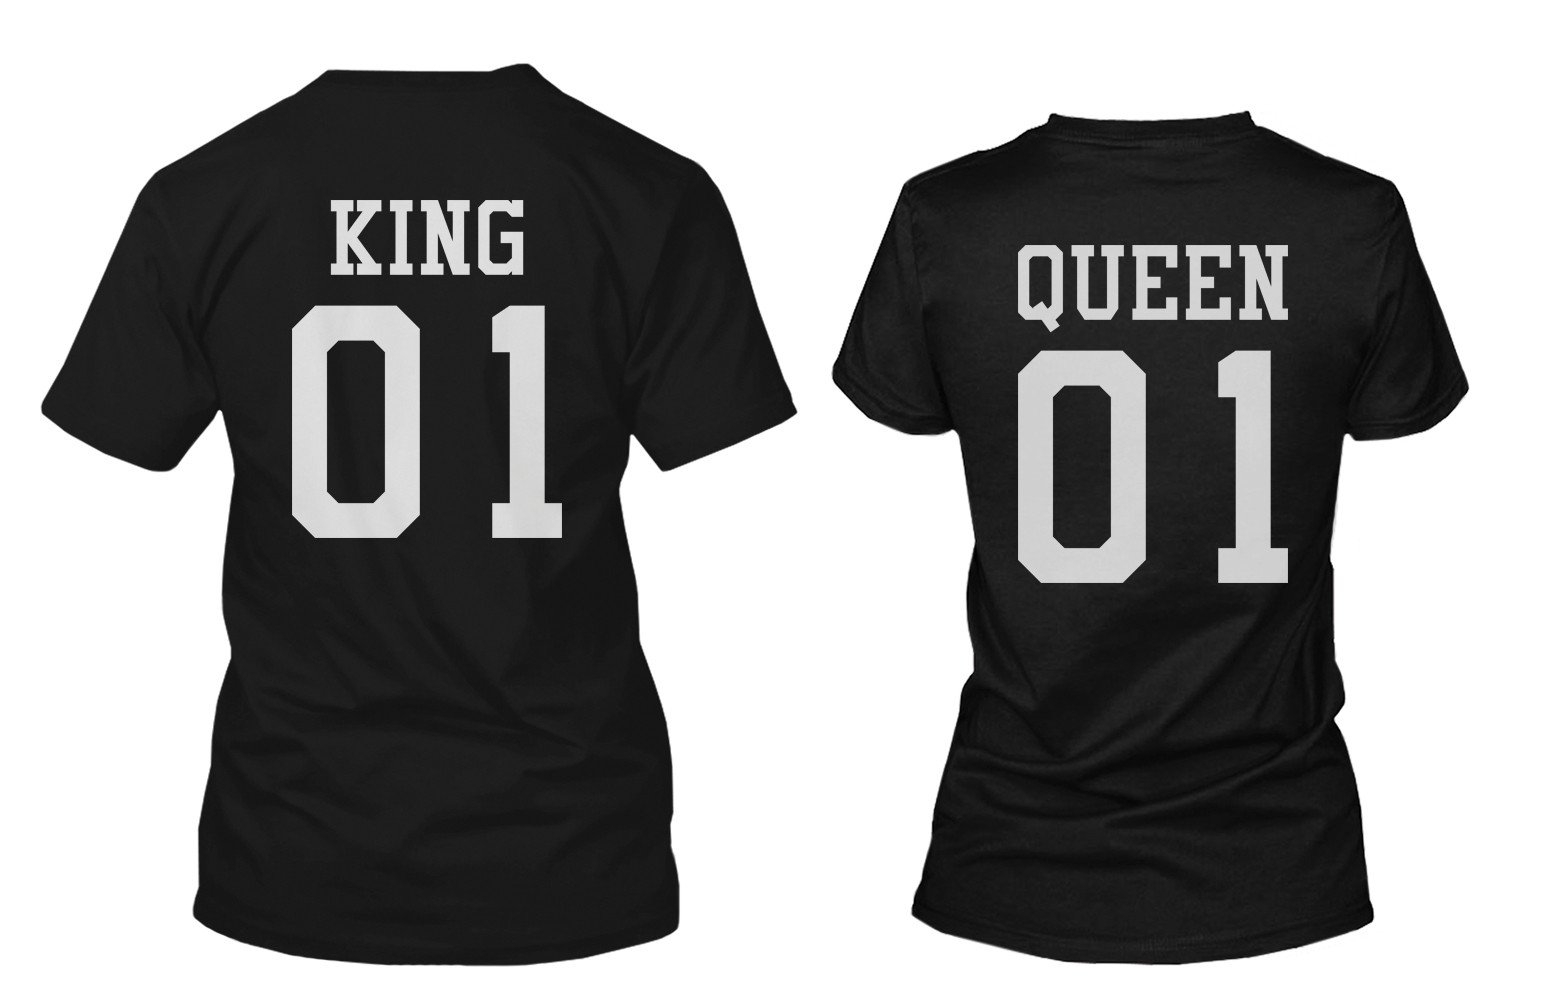 Image of King 01 and Queen 01 Back Print Couple Matching T-Shirts Valentine's Day Gifts Ideas